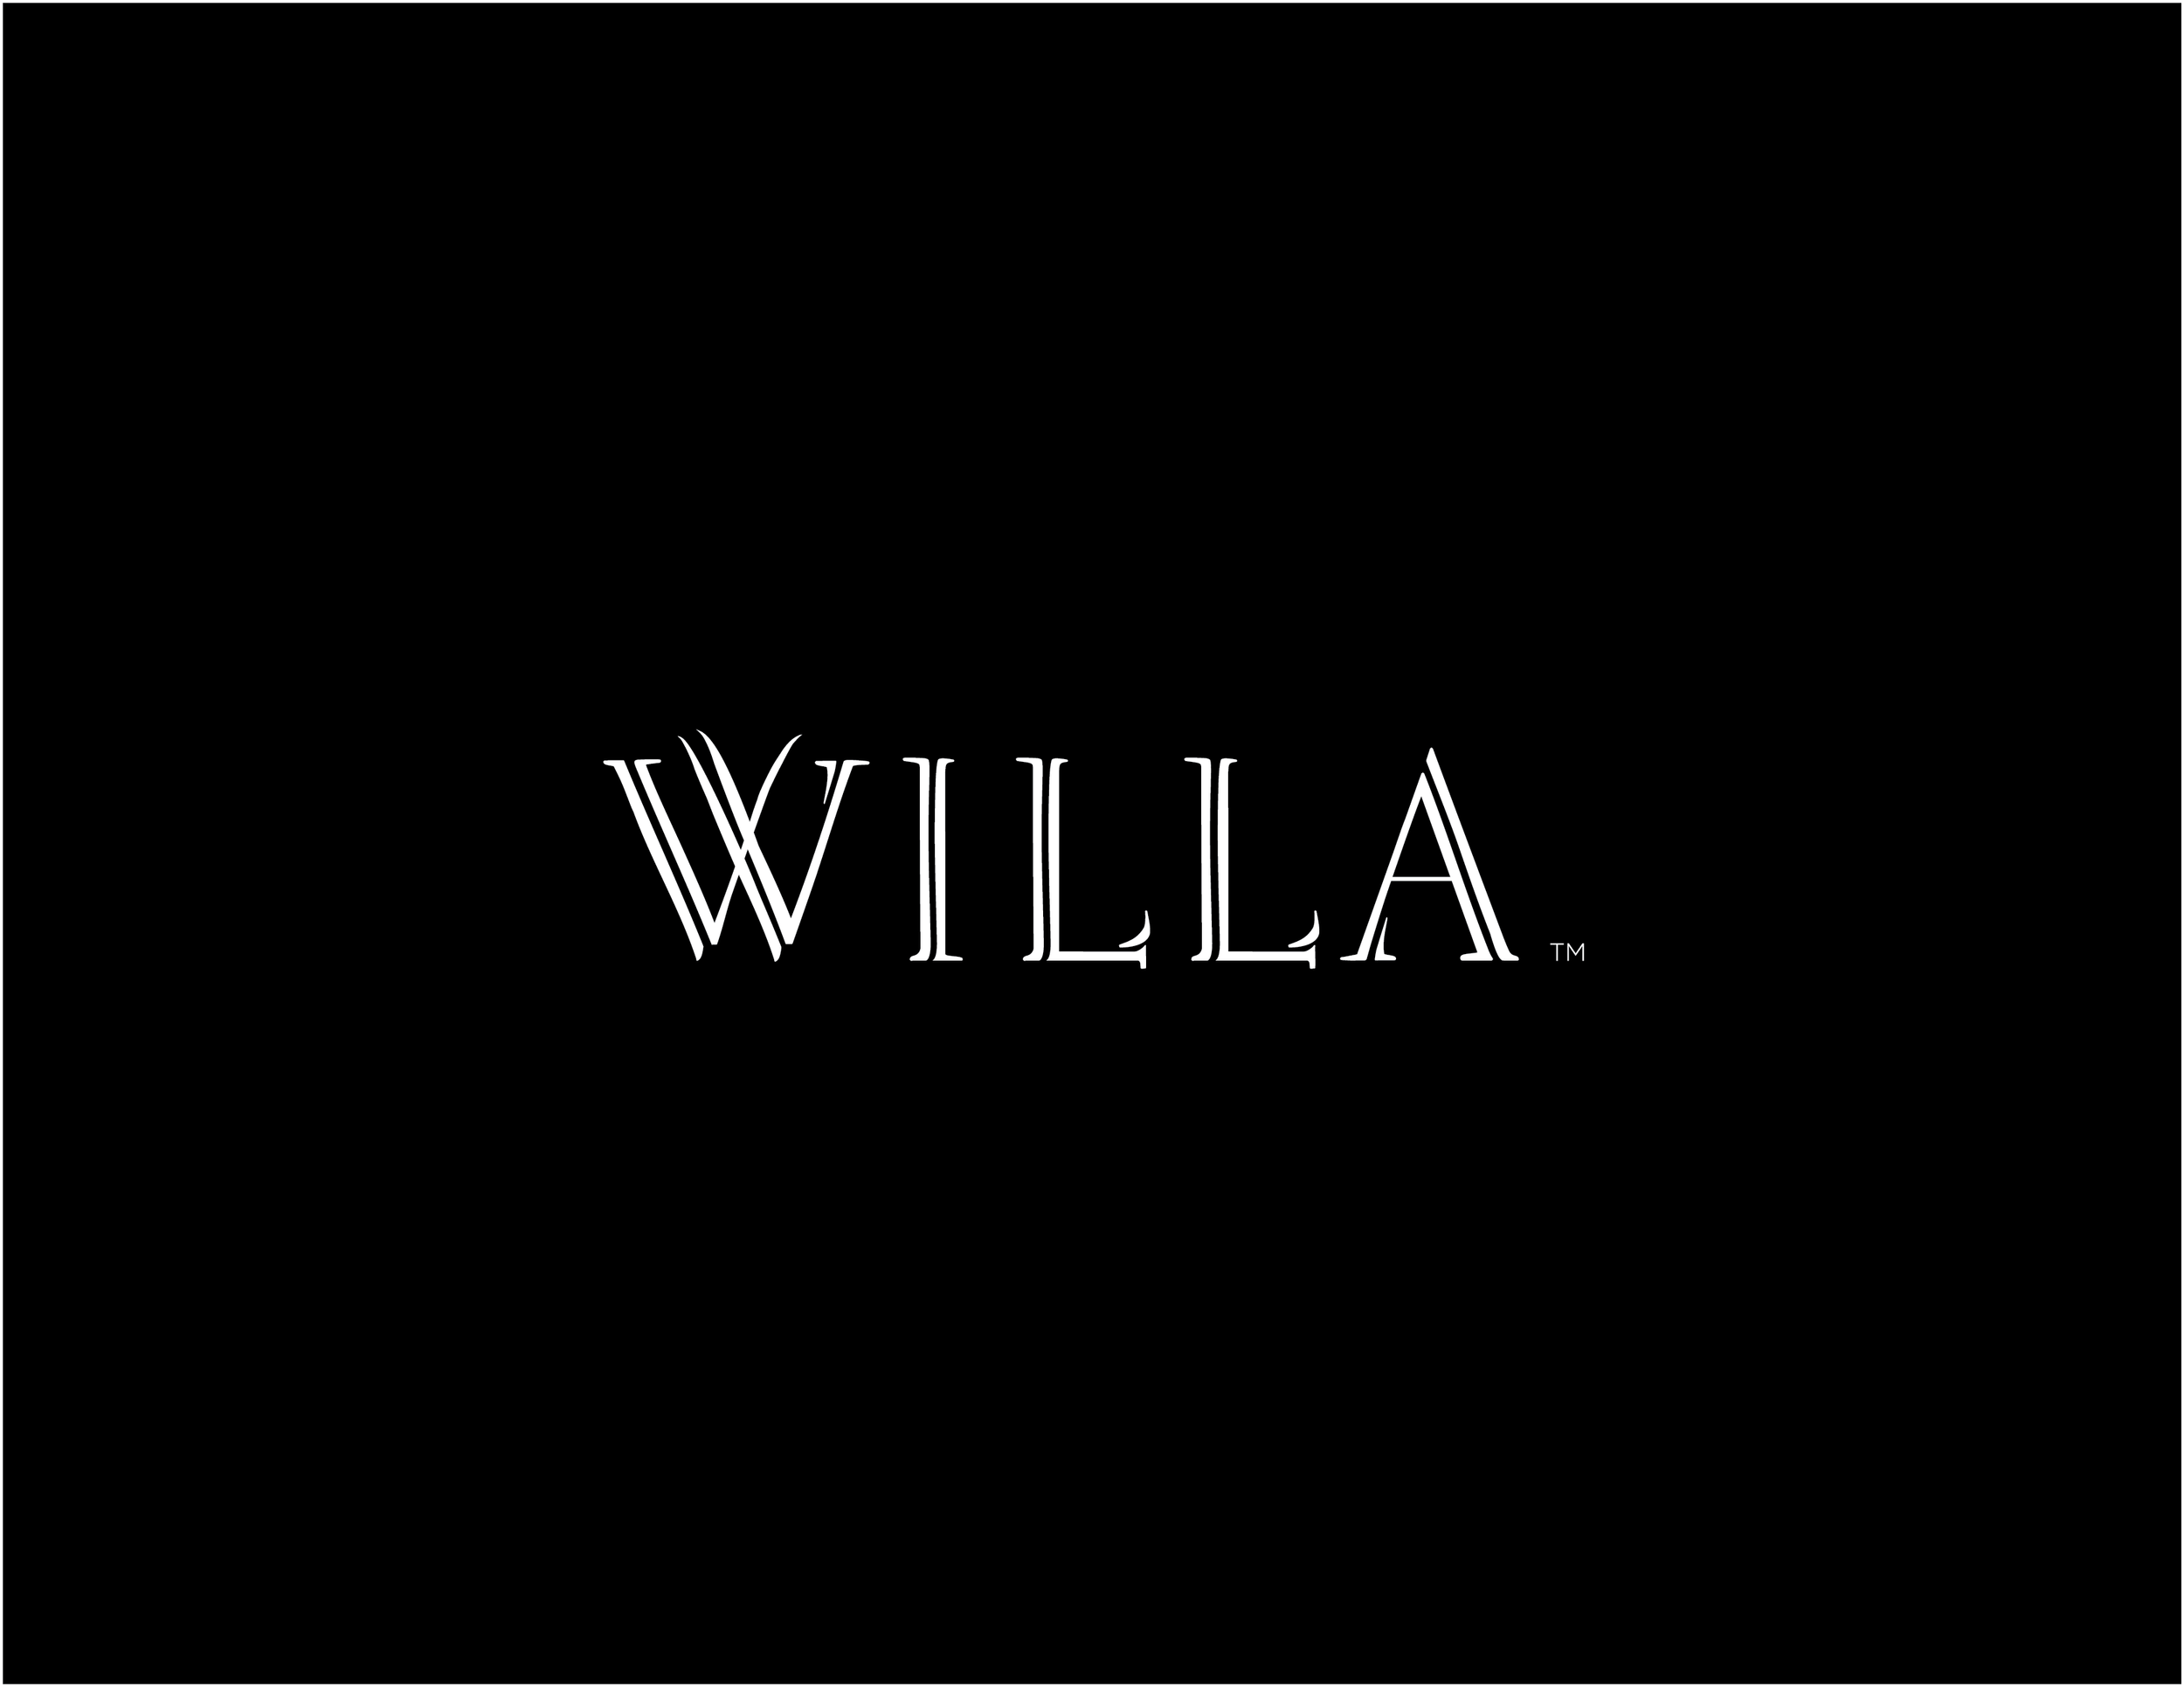 WILLA_logo_final_REV_TYPE_ONLY2.png